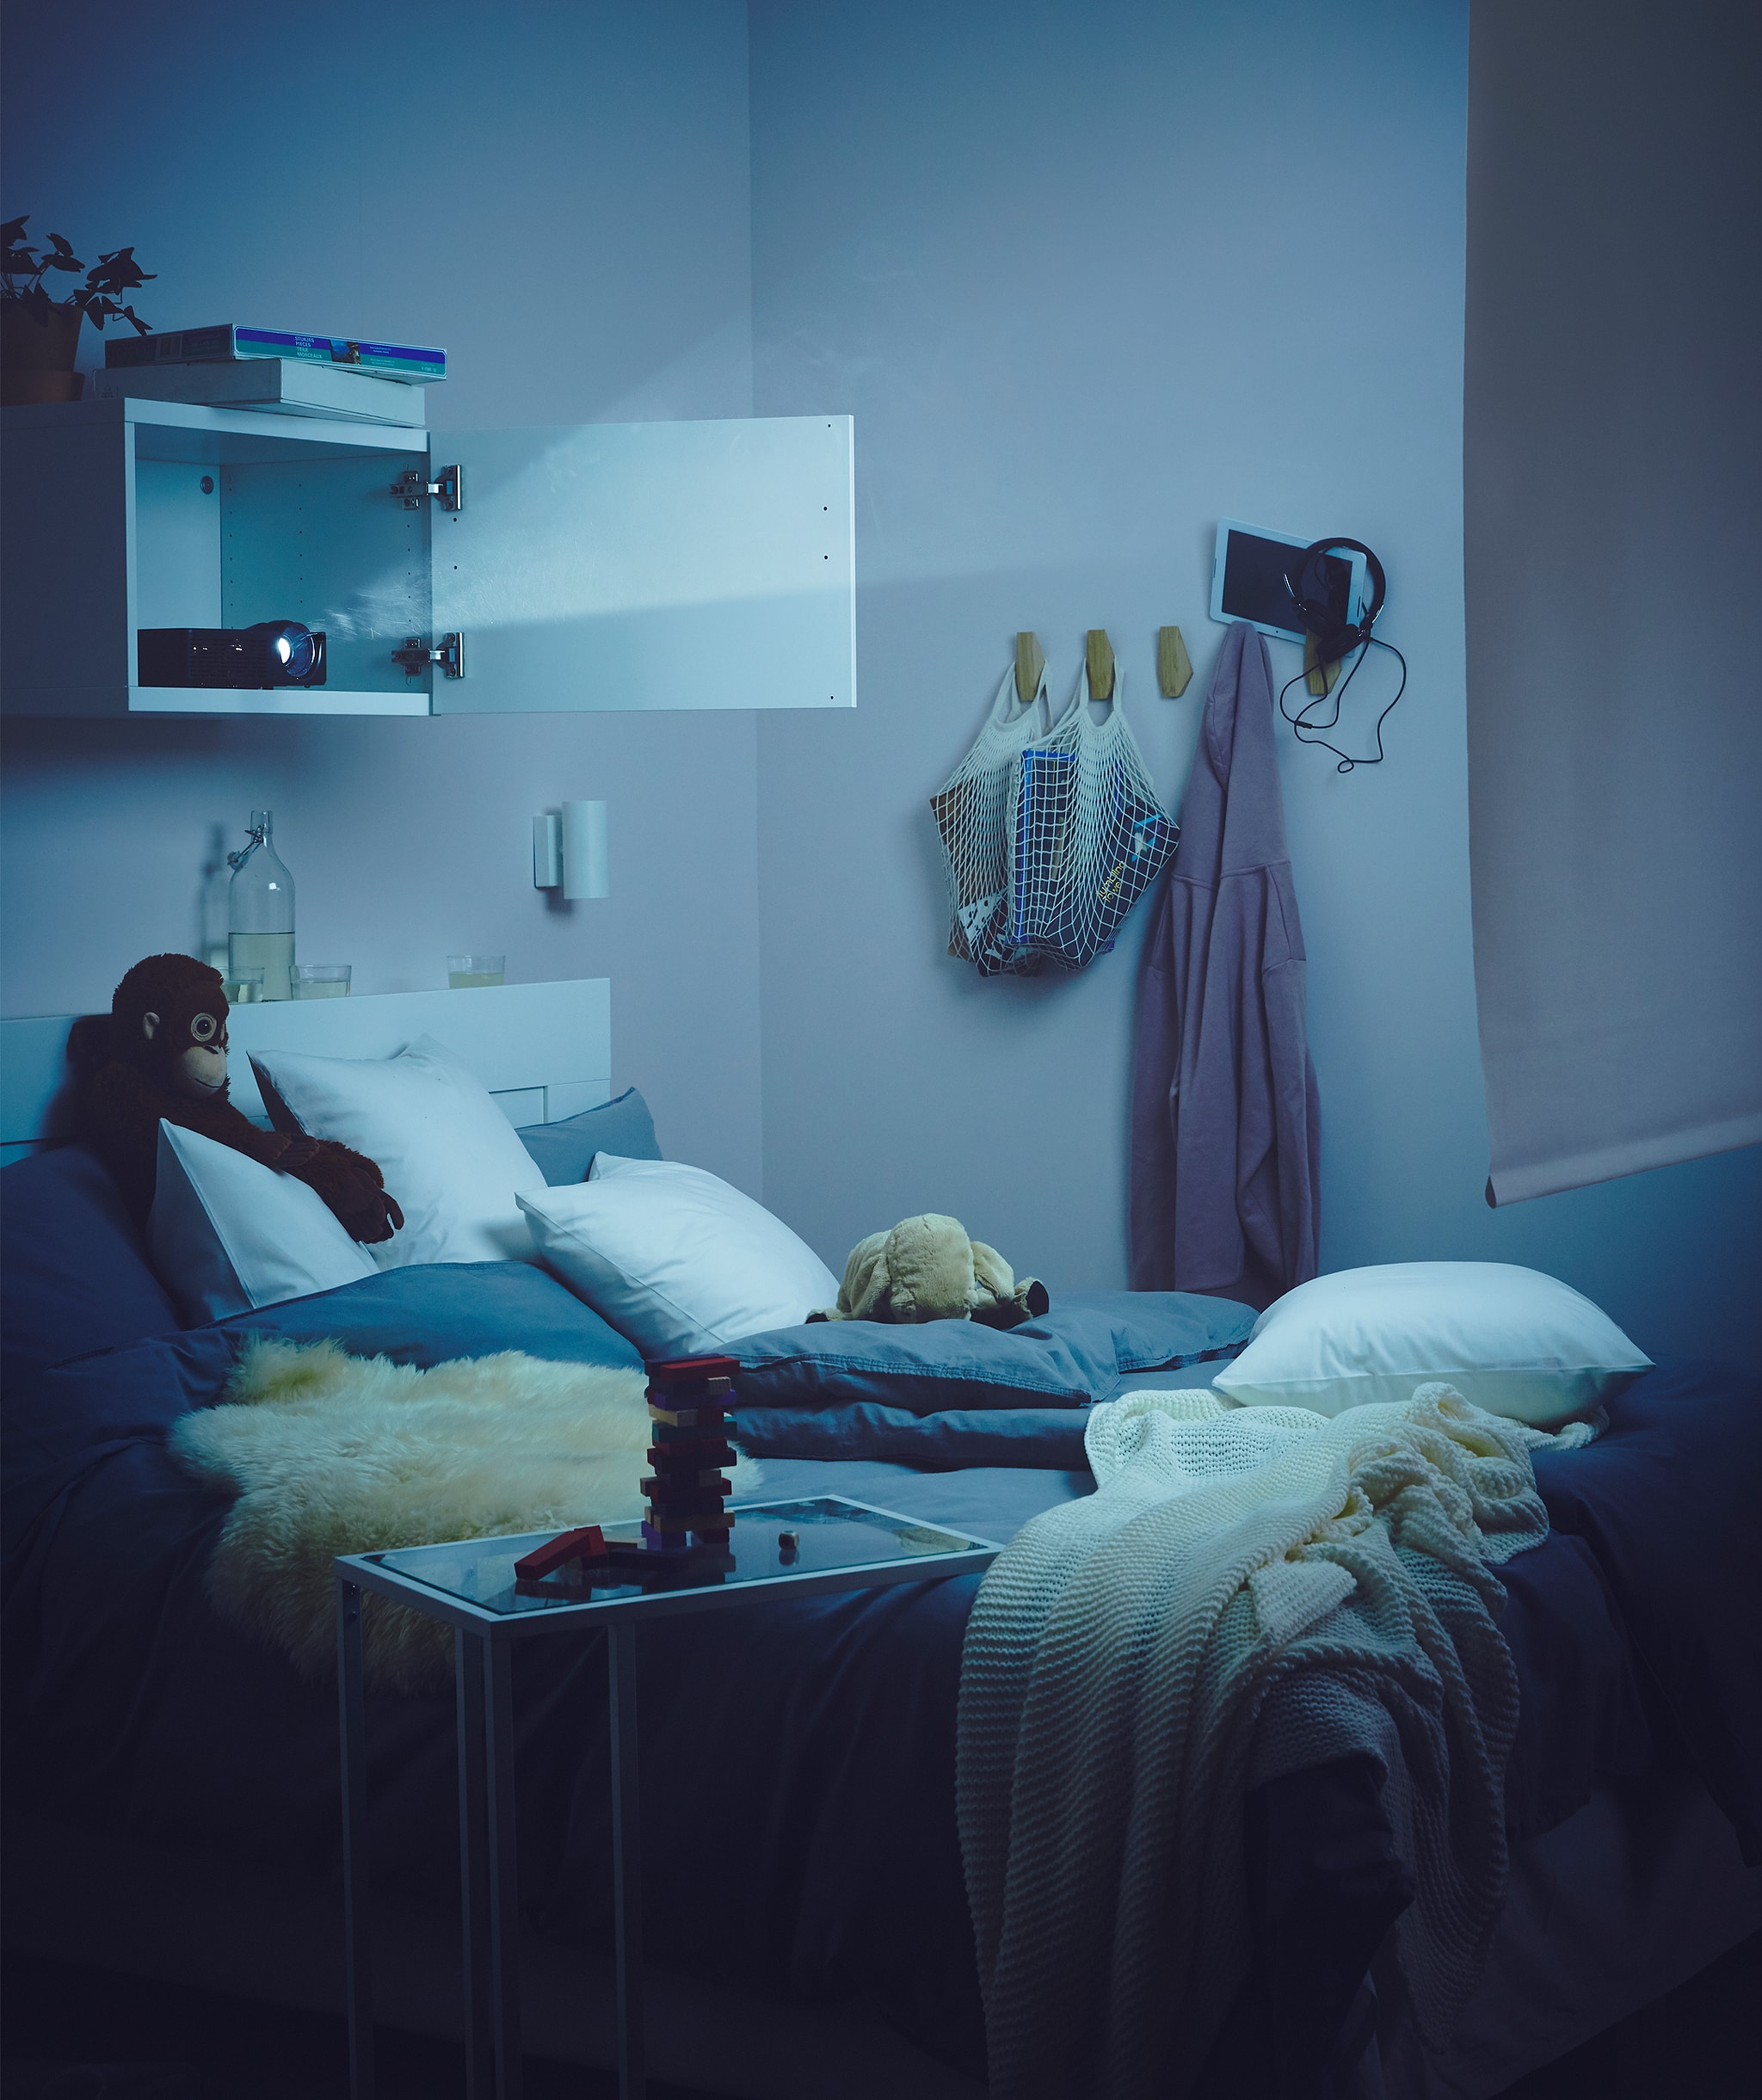 Bedroom dimly lit up by a projector in a wall cupboard above the bed, its beam aimed at a roller blind across the room.